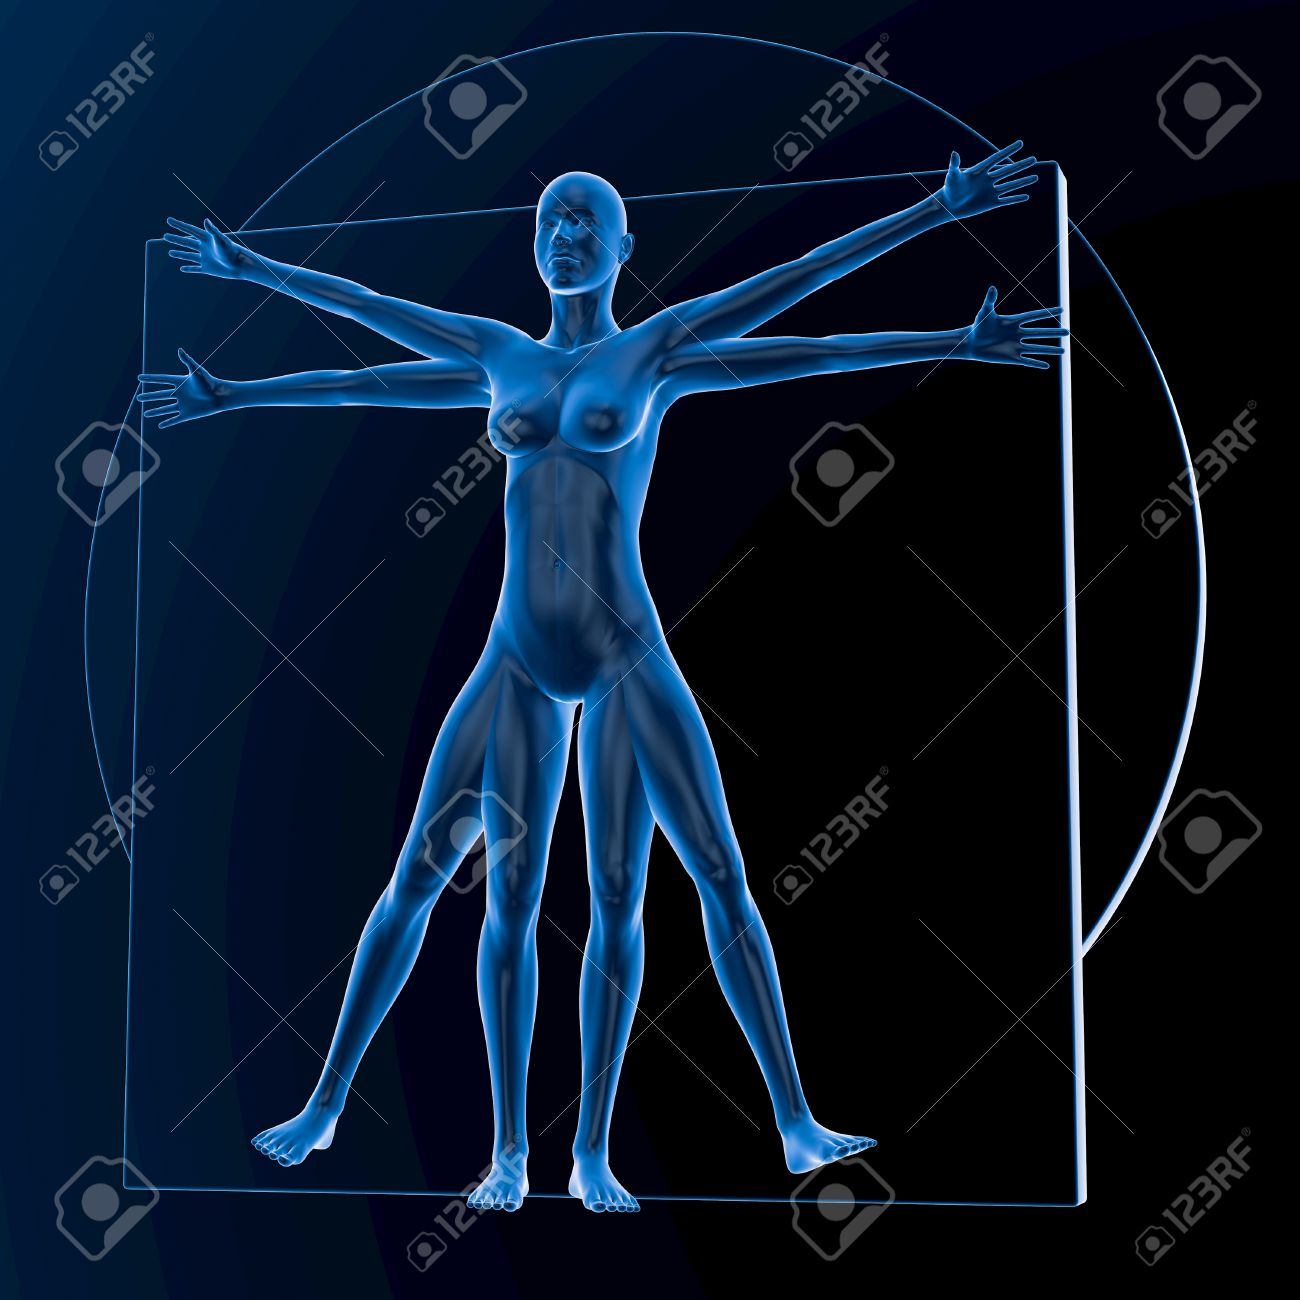 Leonardo Da Vinci Vitruvian Woman Translucent Blue On Dark 1300x1300